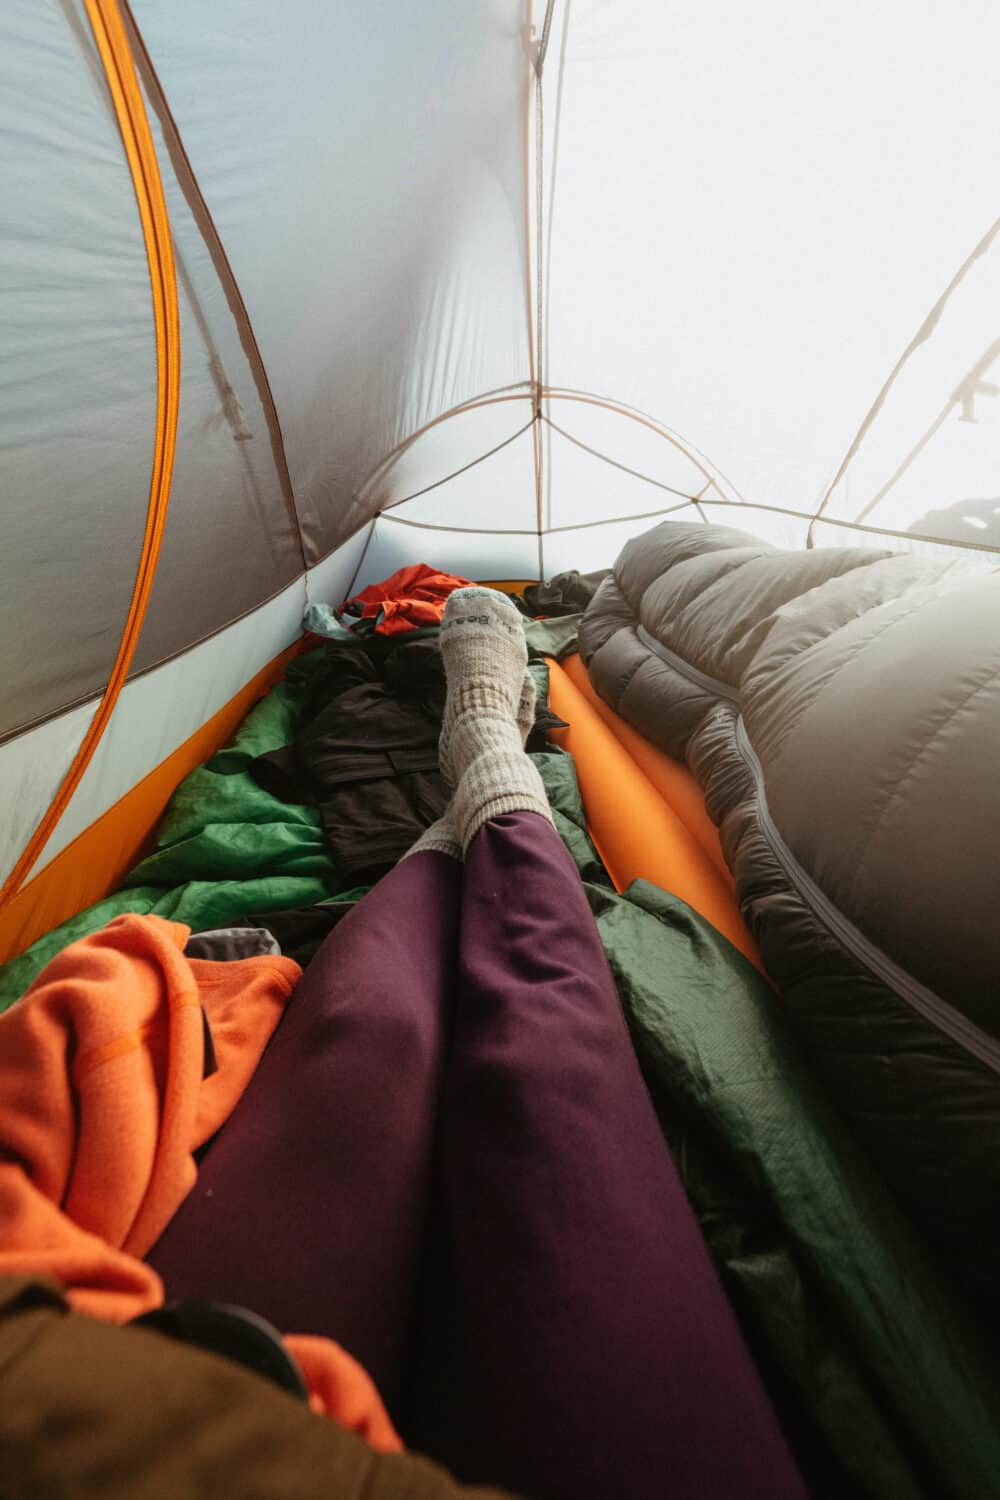 Sleeping clothes for camping hygiene